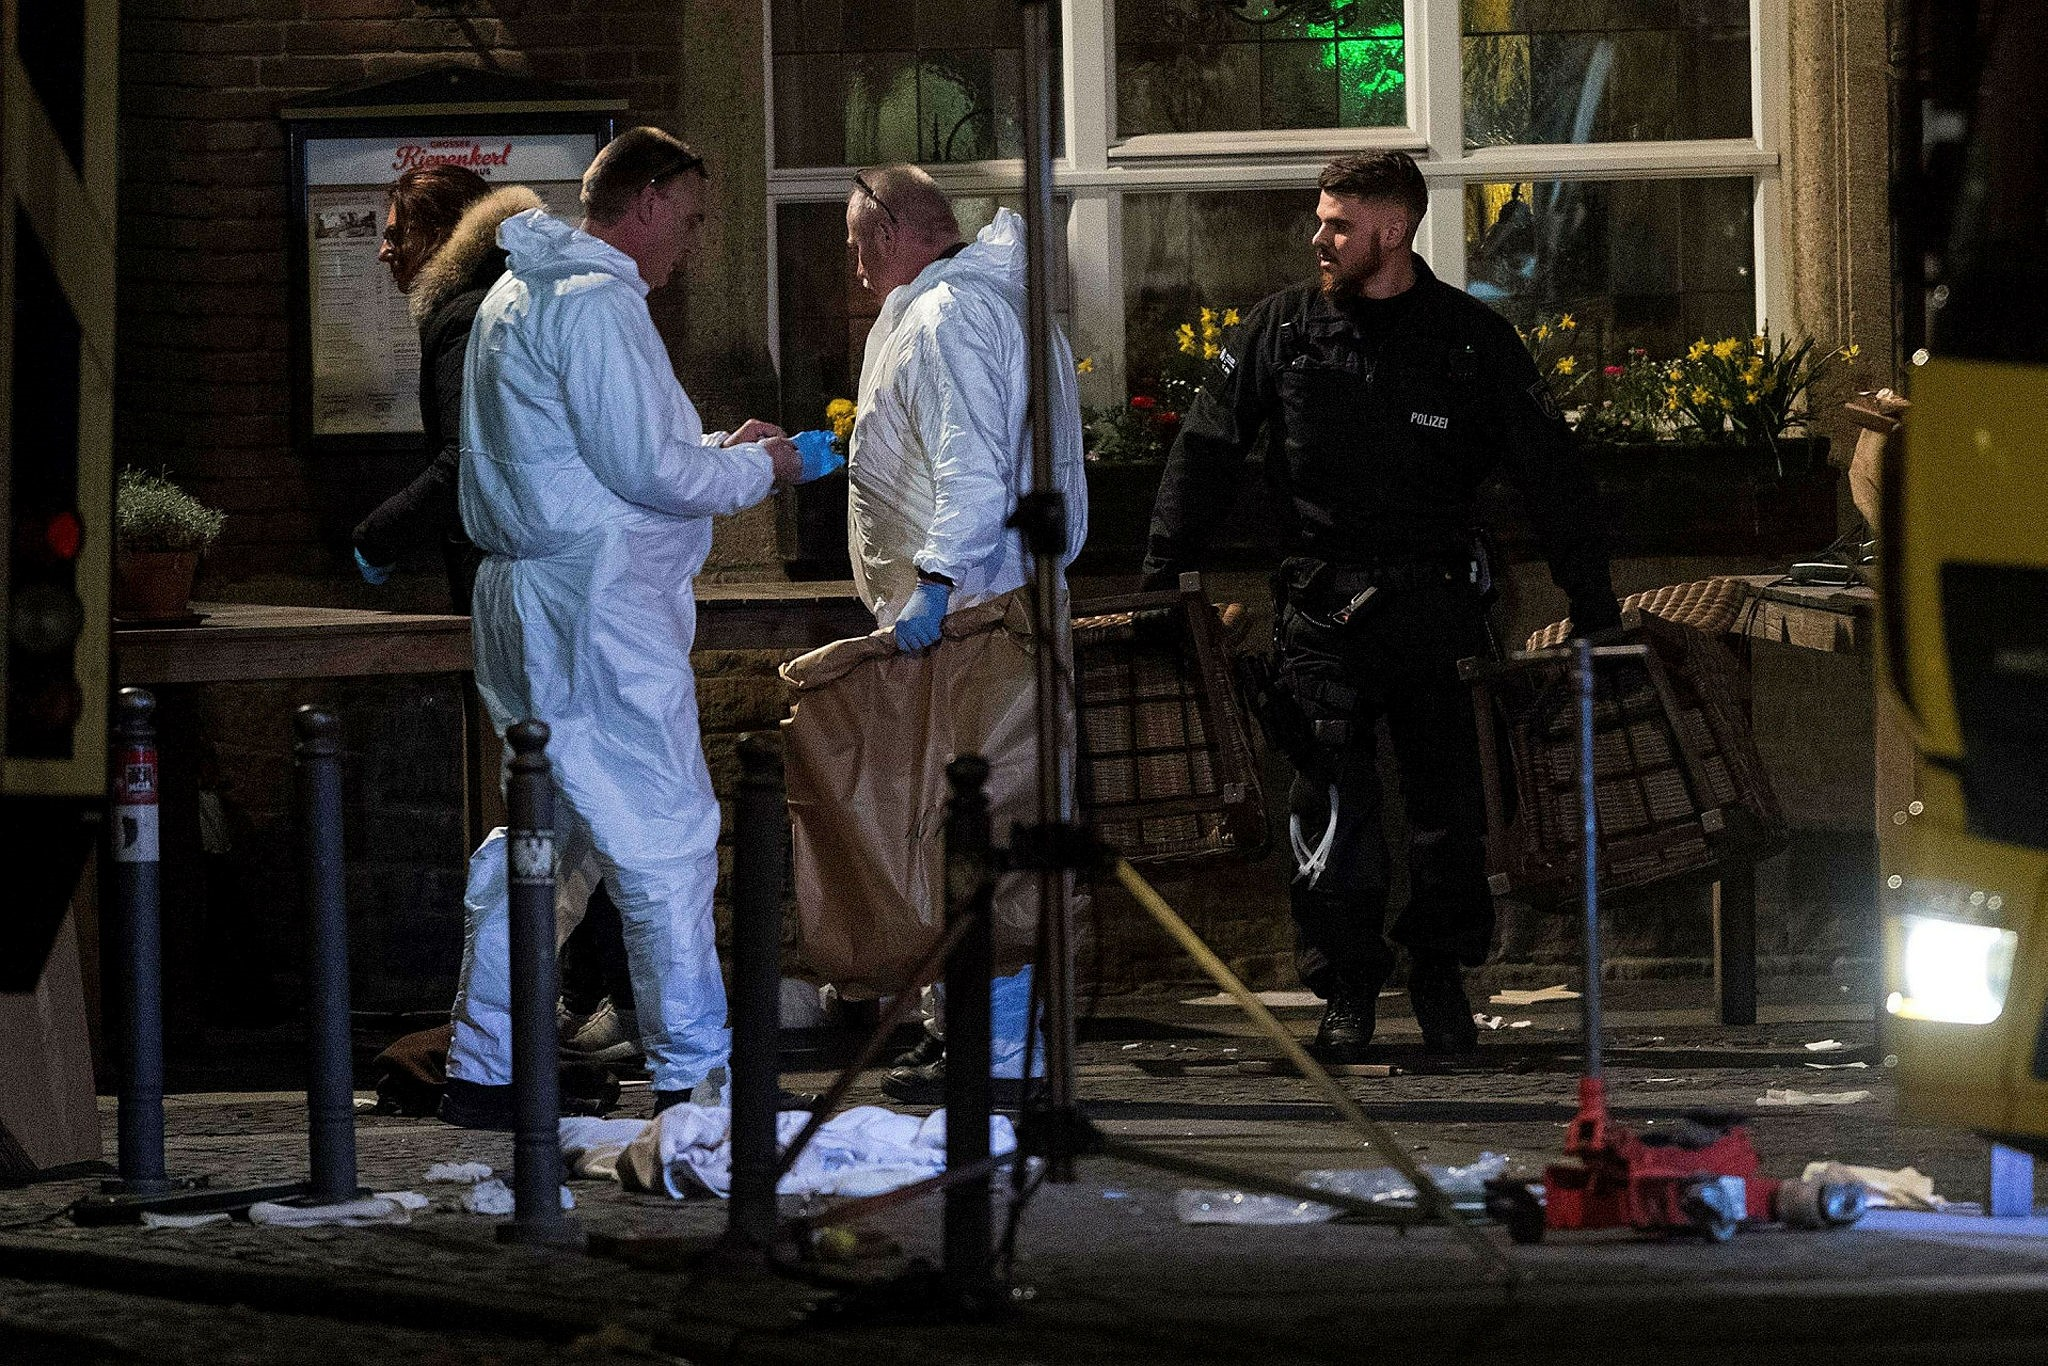 Investigators working at the square where a man rammed his car into a crowd, killing two and injuring several others in Muenster, Germany, April 8.